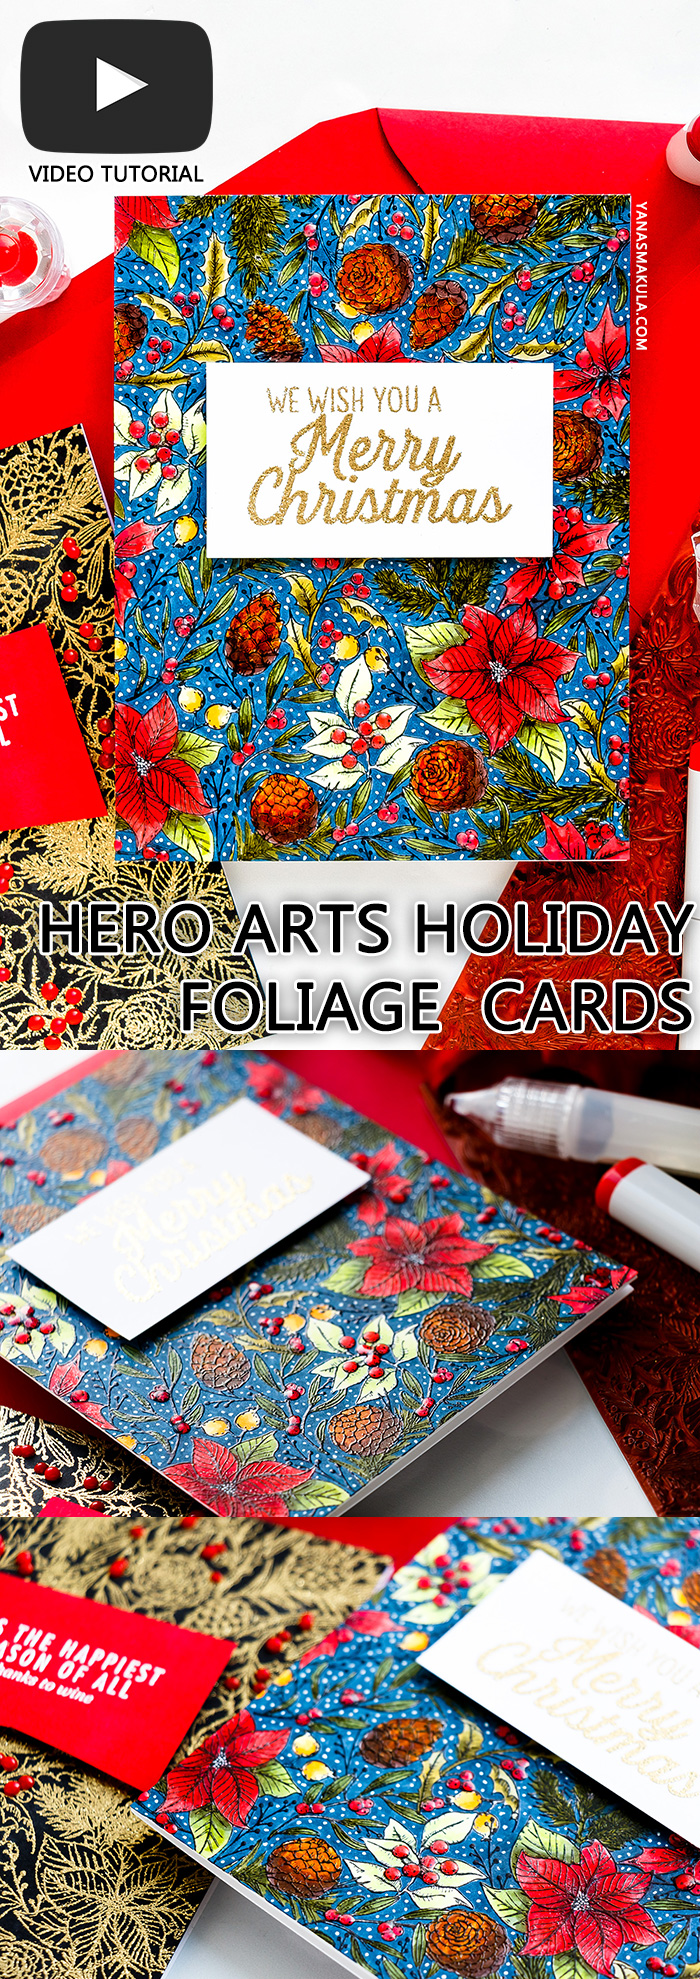 Hero Arts | One Background Three Ways - Holiday Foliage Cards by Yana Smakula #stamping #heroarts #christmascard #cardmakingforbeginners #cardmaking #yscardmaking #stampingtechniques #christmascardhandmade